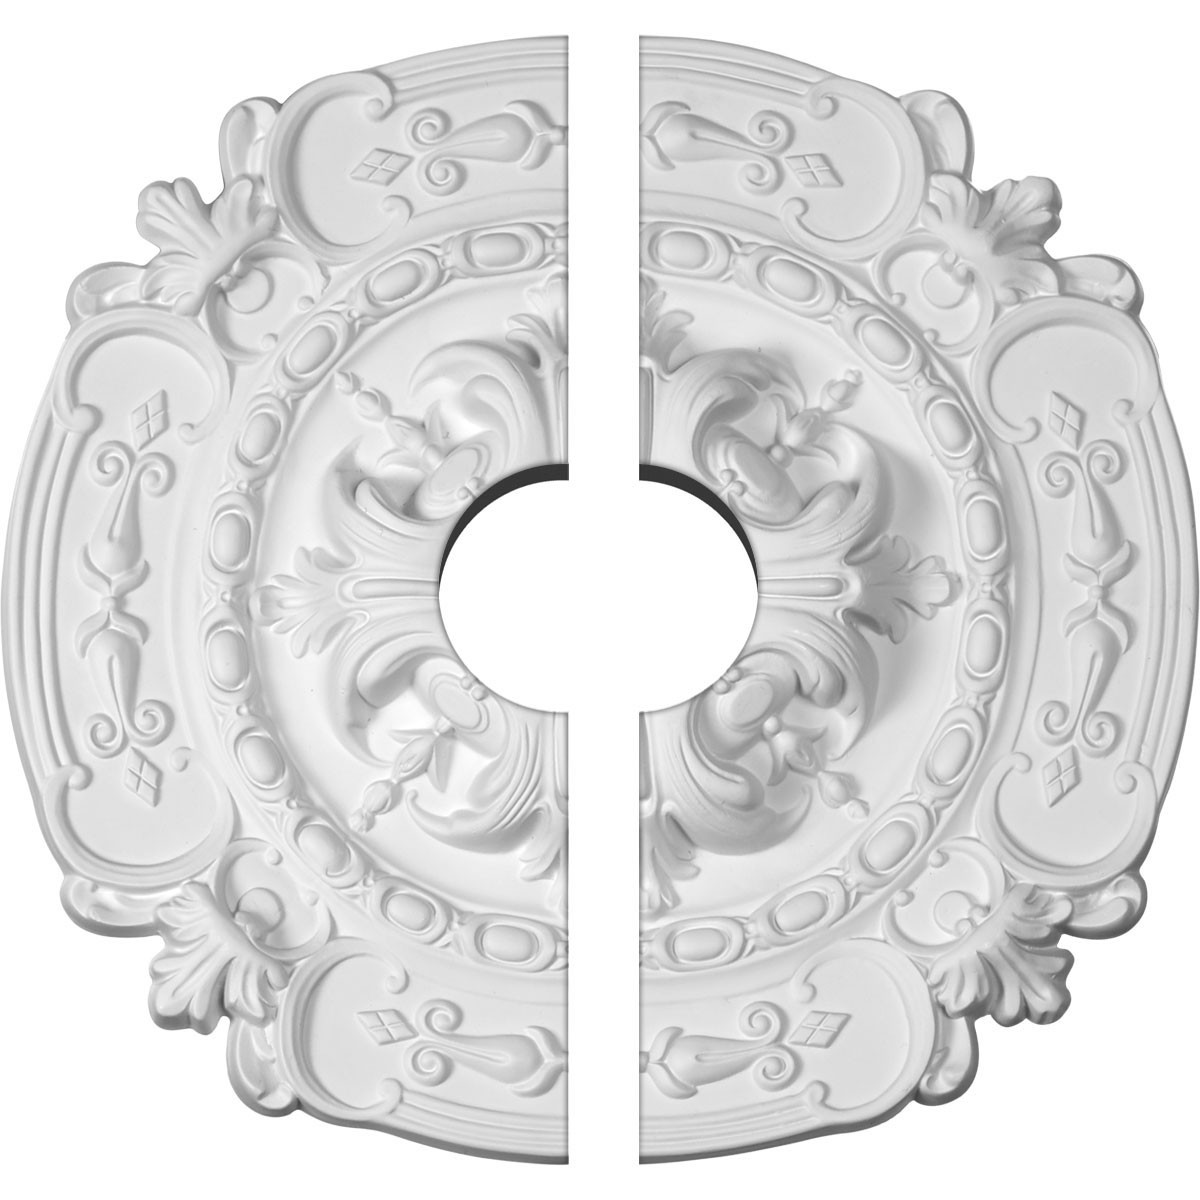 "EM-CM17SO2-03500 - 16 3/8""OD x 3 1/2""ID x 1 3/4""P Southampton Ceiling Medallion, Two Piece (Fits Canopies up to 3 1/2"")"